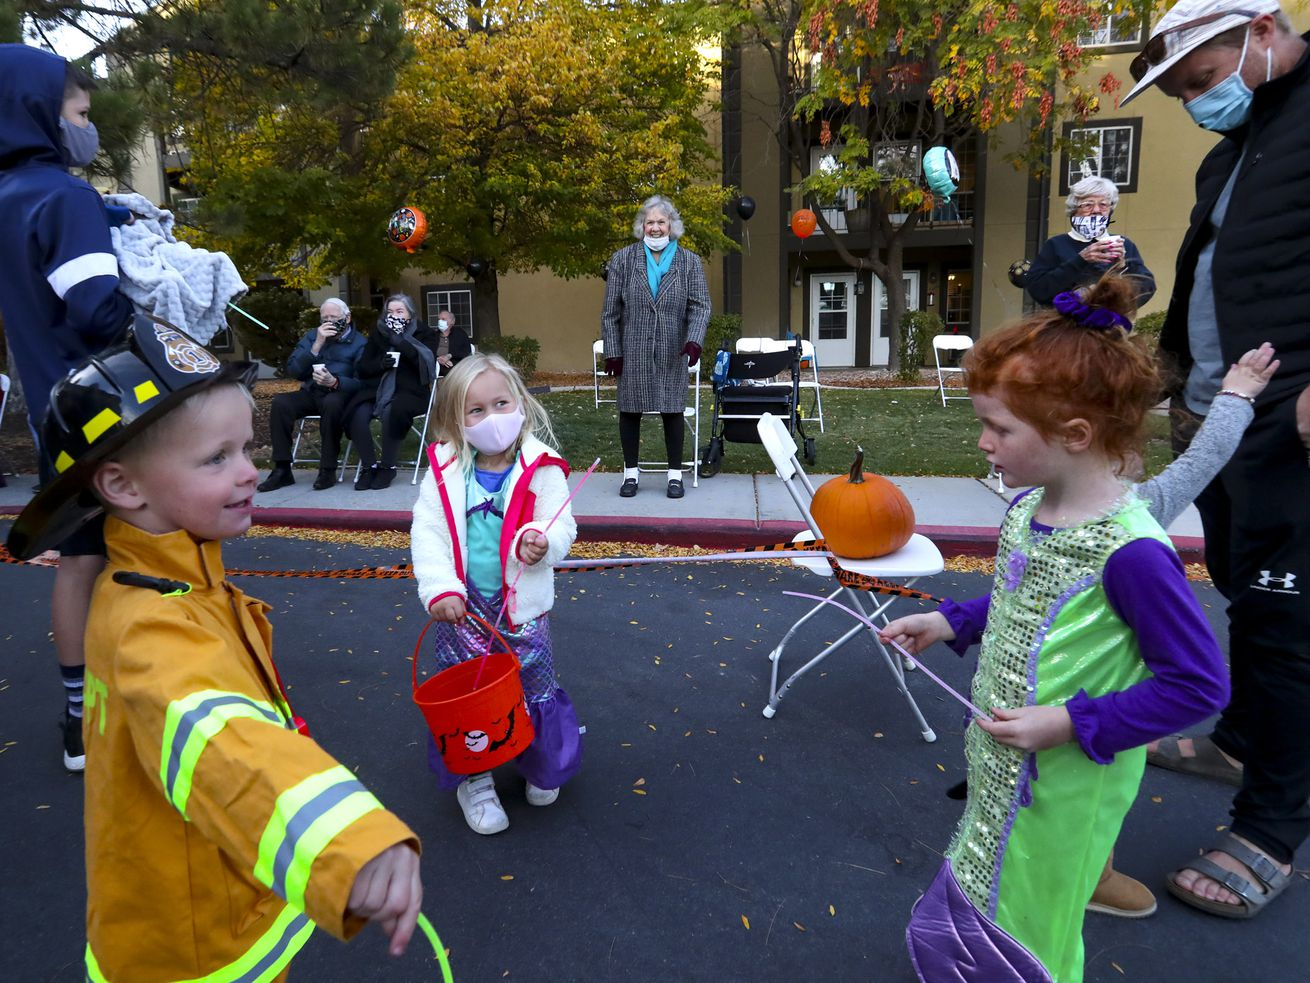 No tricks, all treats: Halloween parade brings costumed visitors to seniors